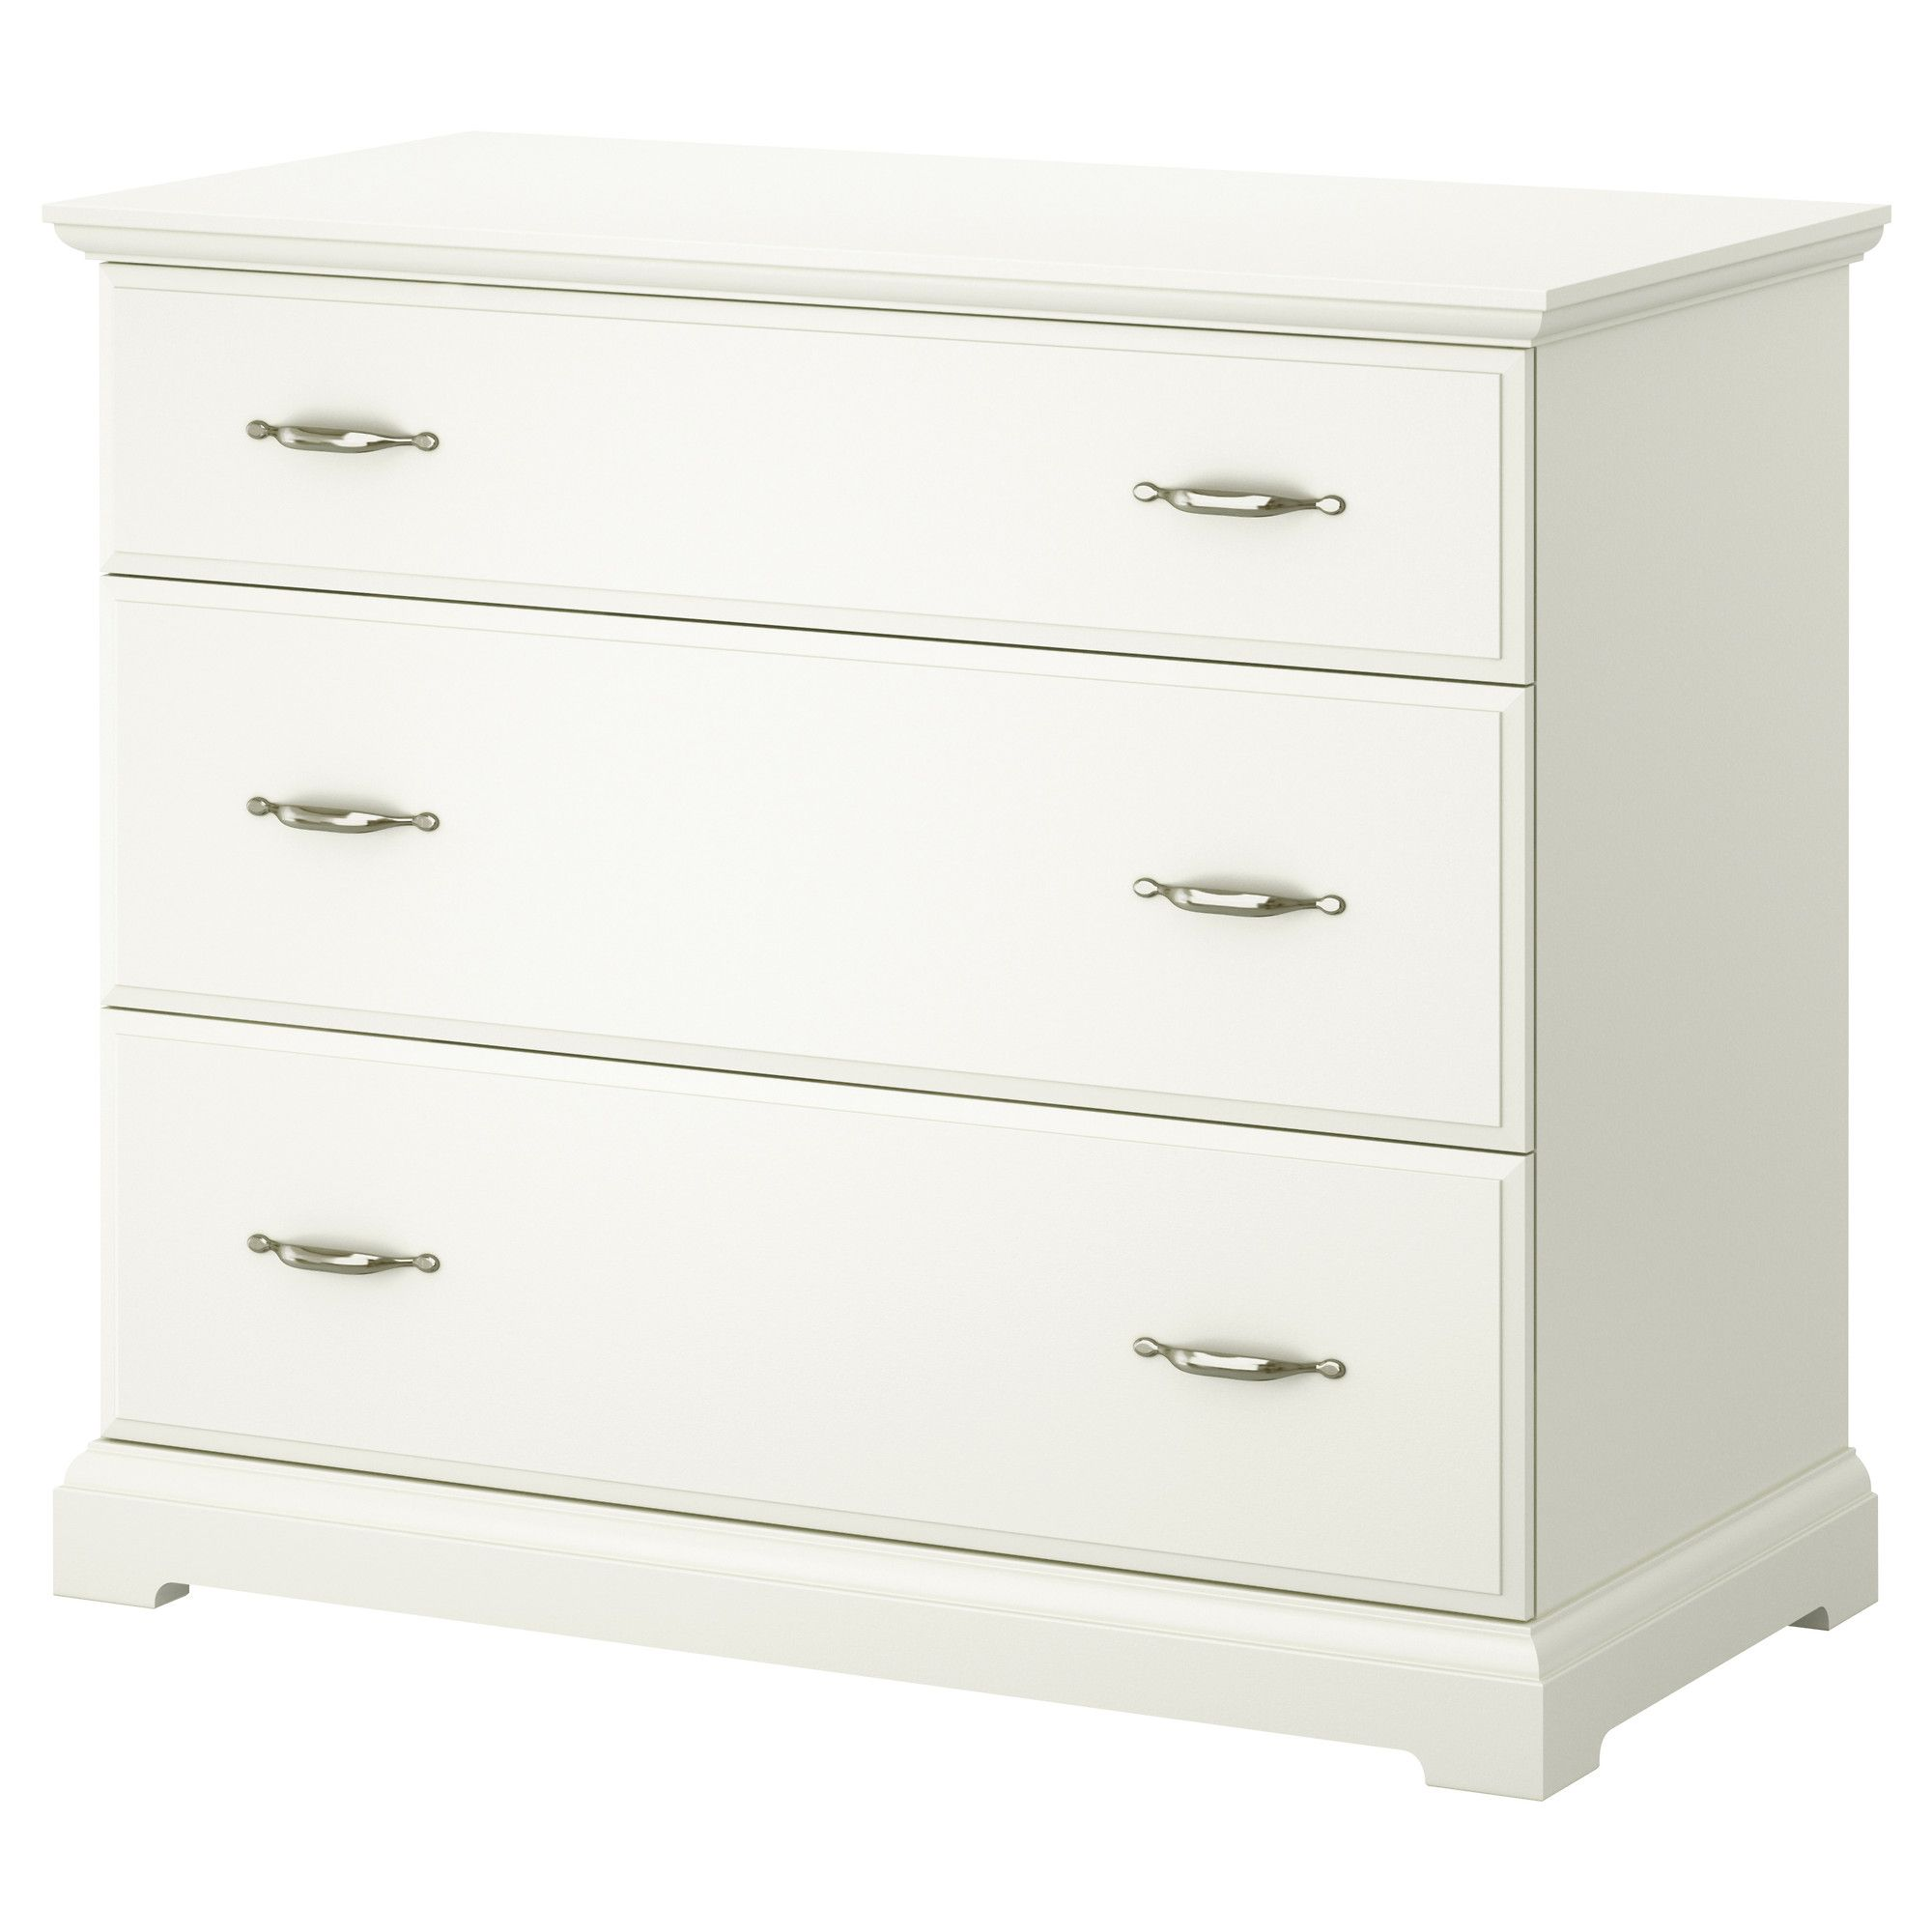 Ikea Wäschekommode Birkeland 3 Drawer Chest Ikea Home Ikea Ikea Birkeland 3